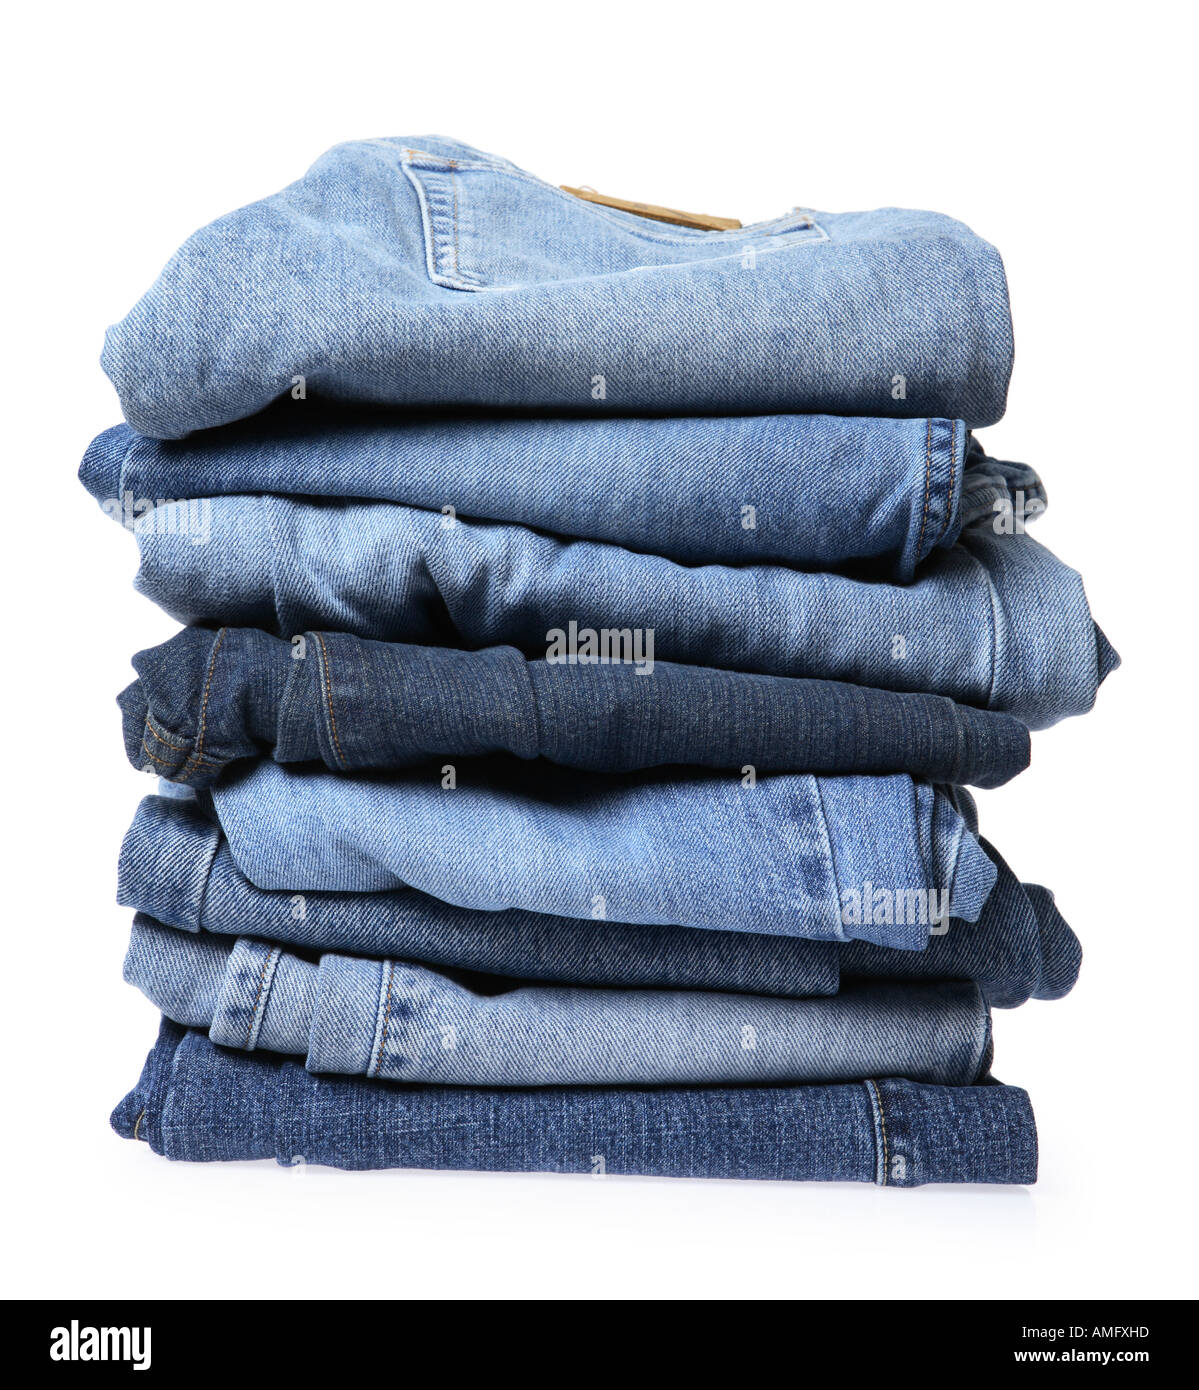 Jeans Denim Blue Stack Photo Stock